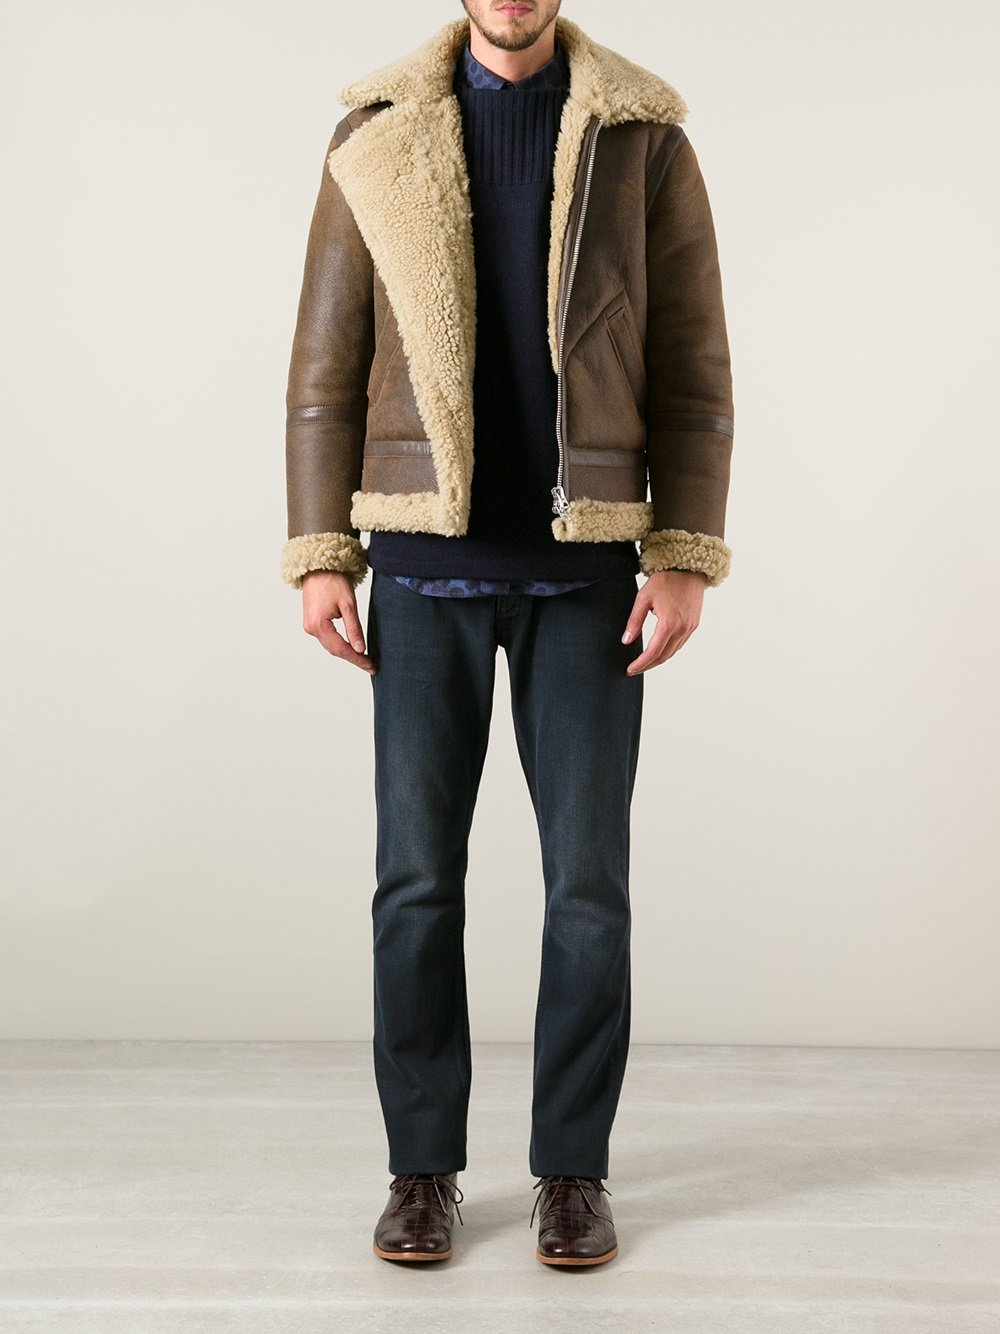 532a6b8ede6 Acne Studios 'Ian Shearling' Jacket in Brown for Men - Lyst